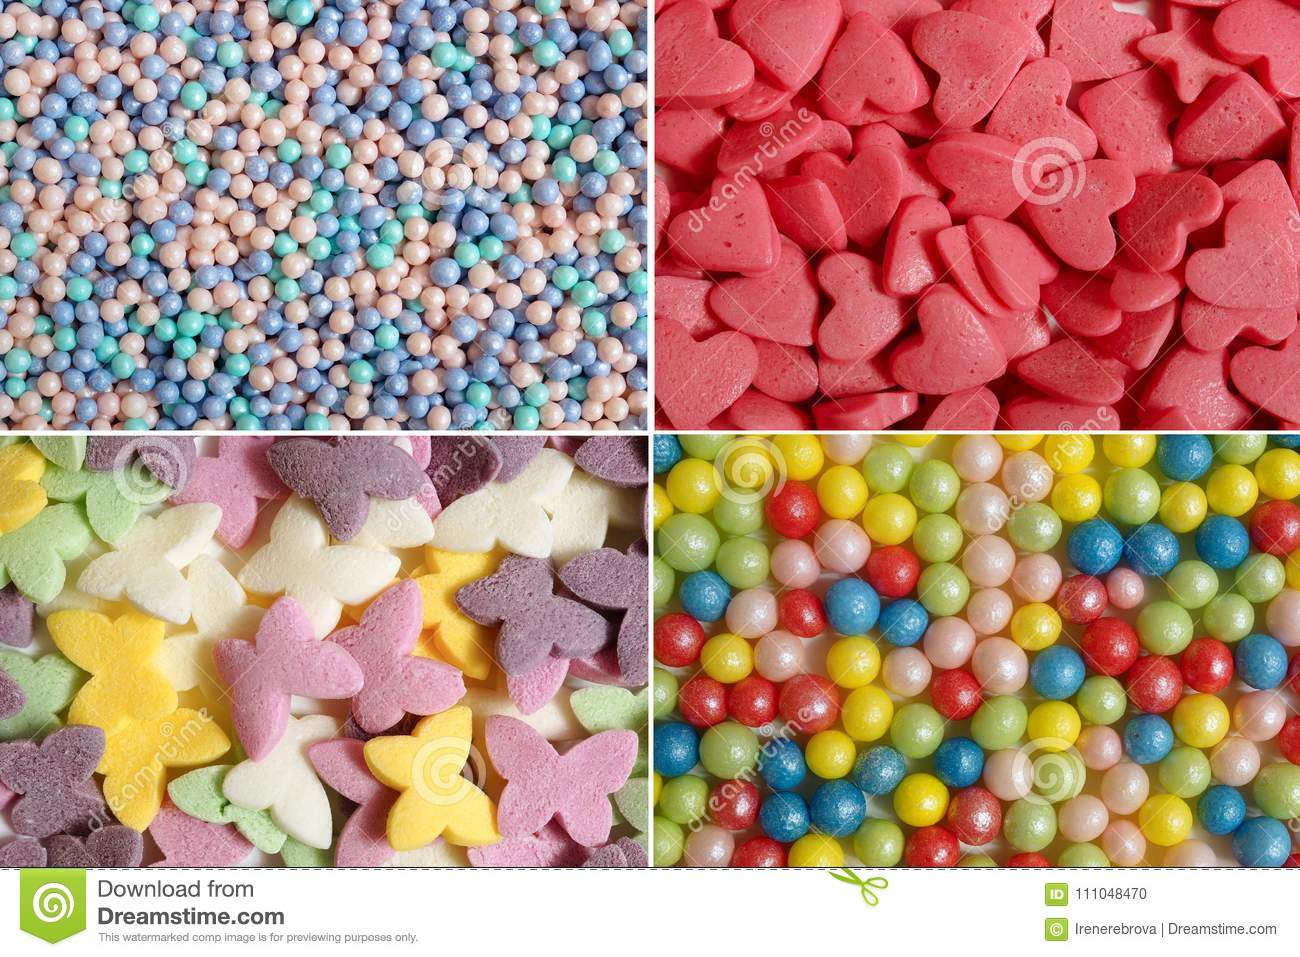 Confectionery decorations for cake.